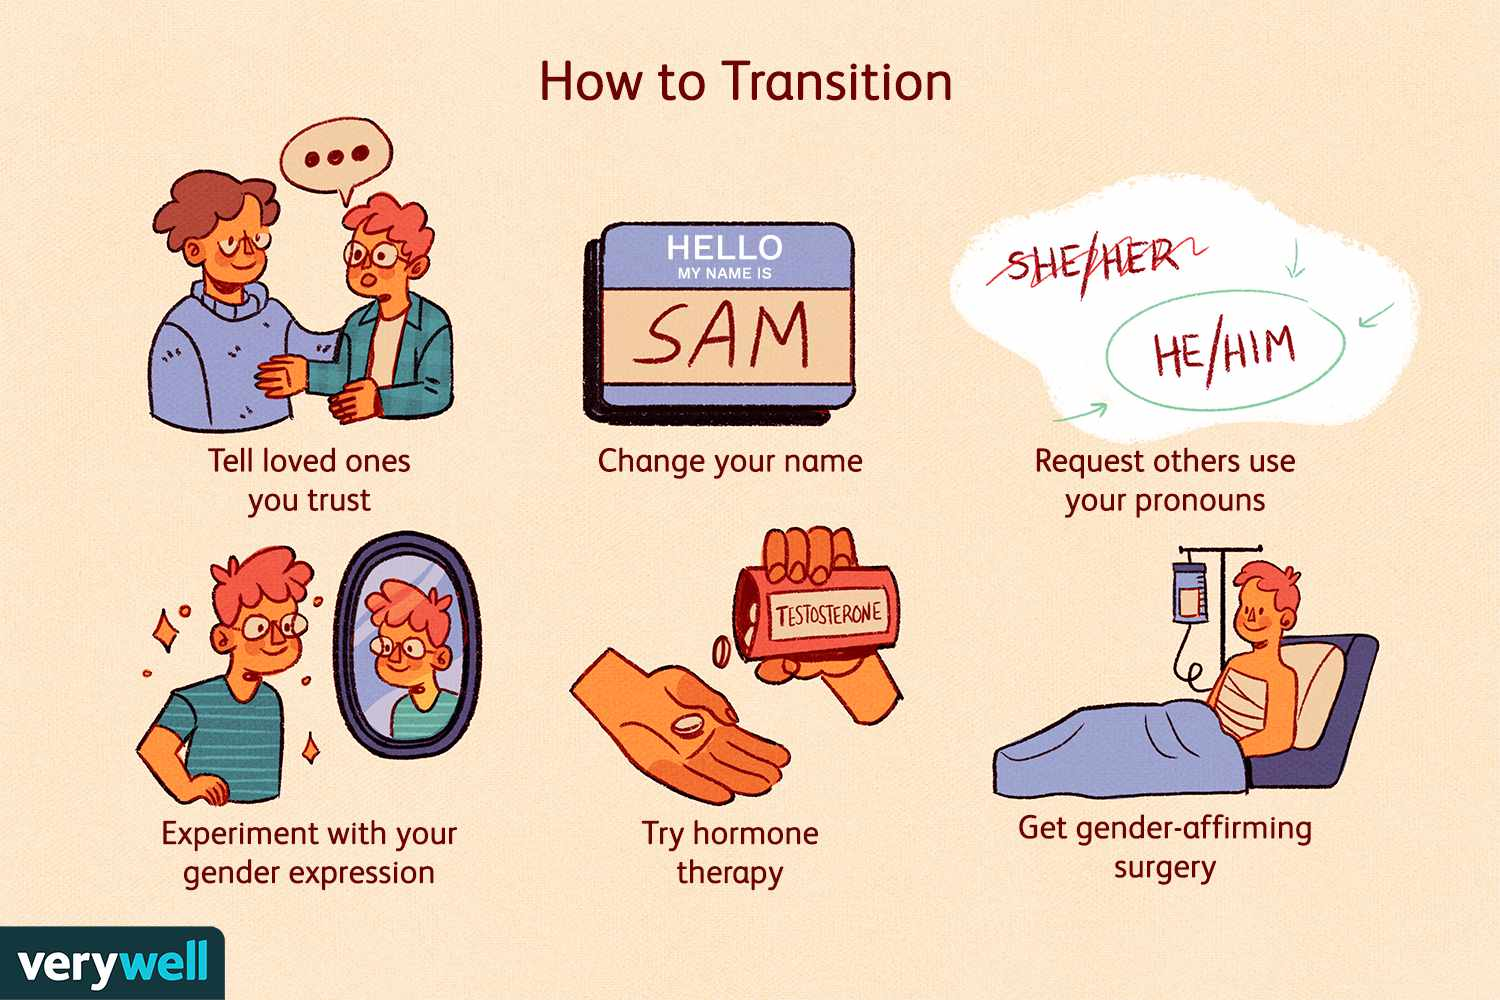 How to Transition